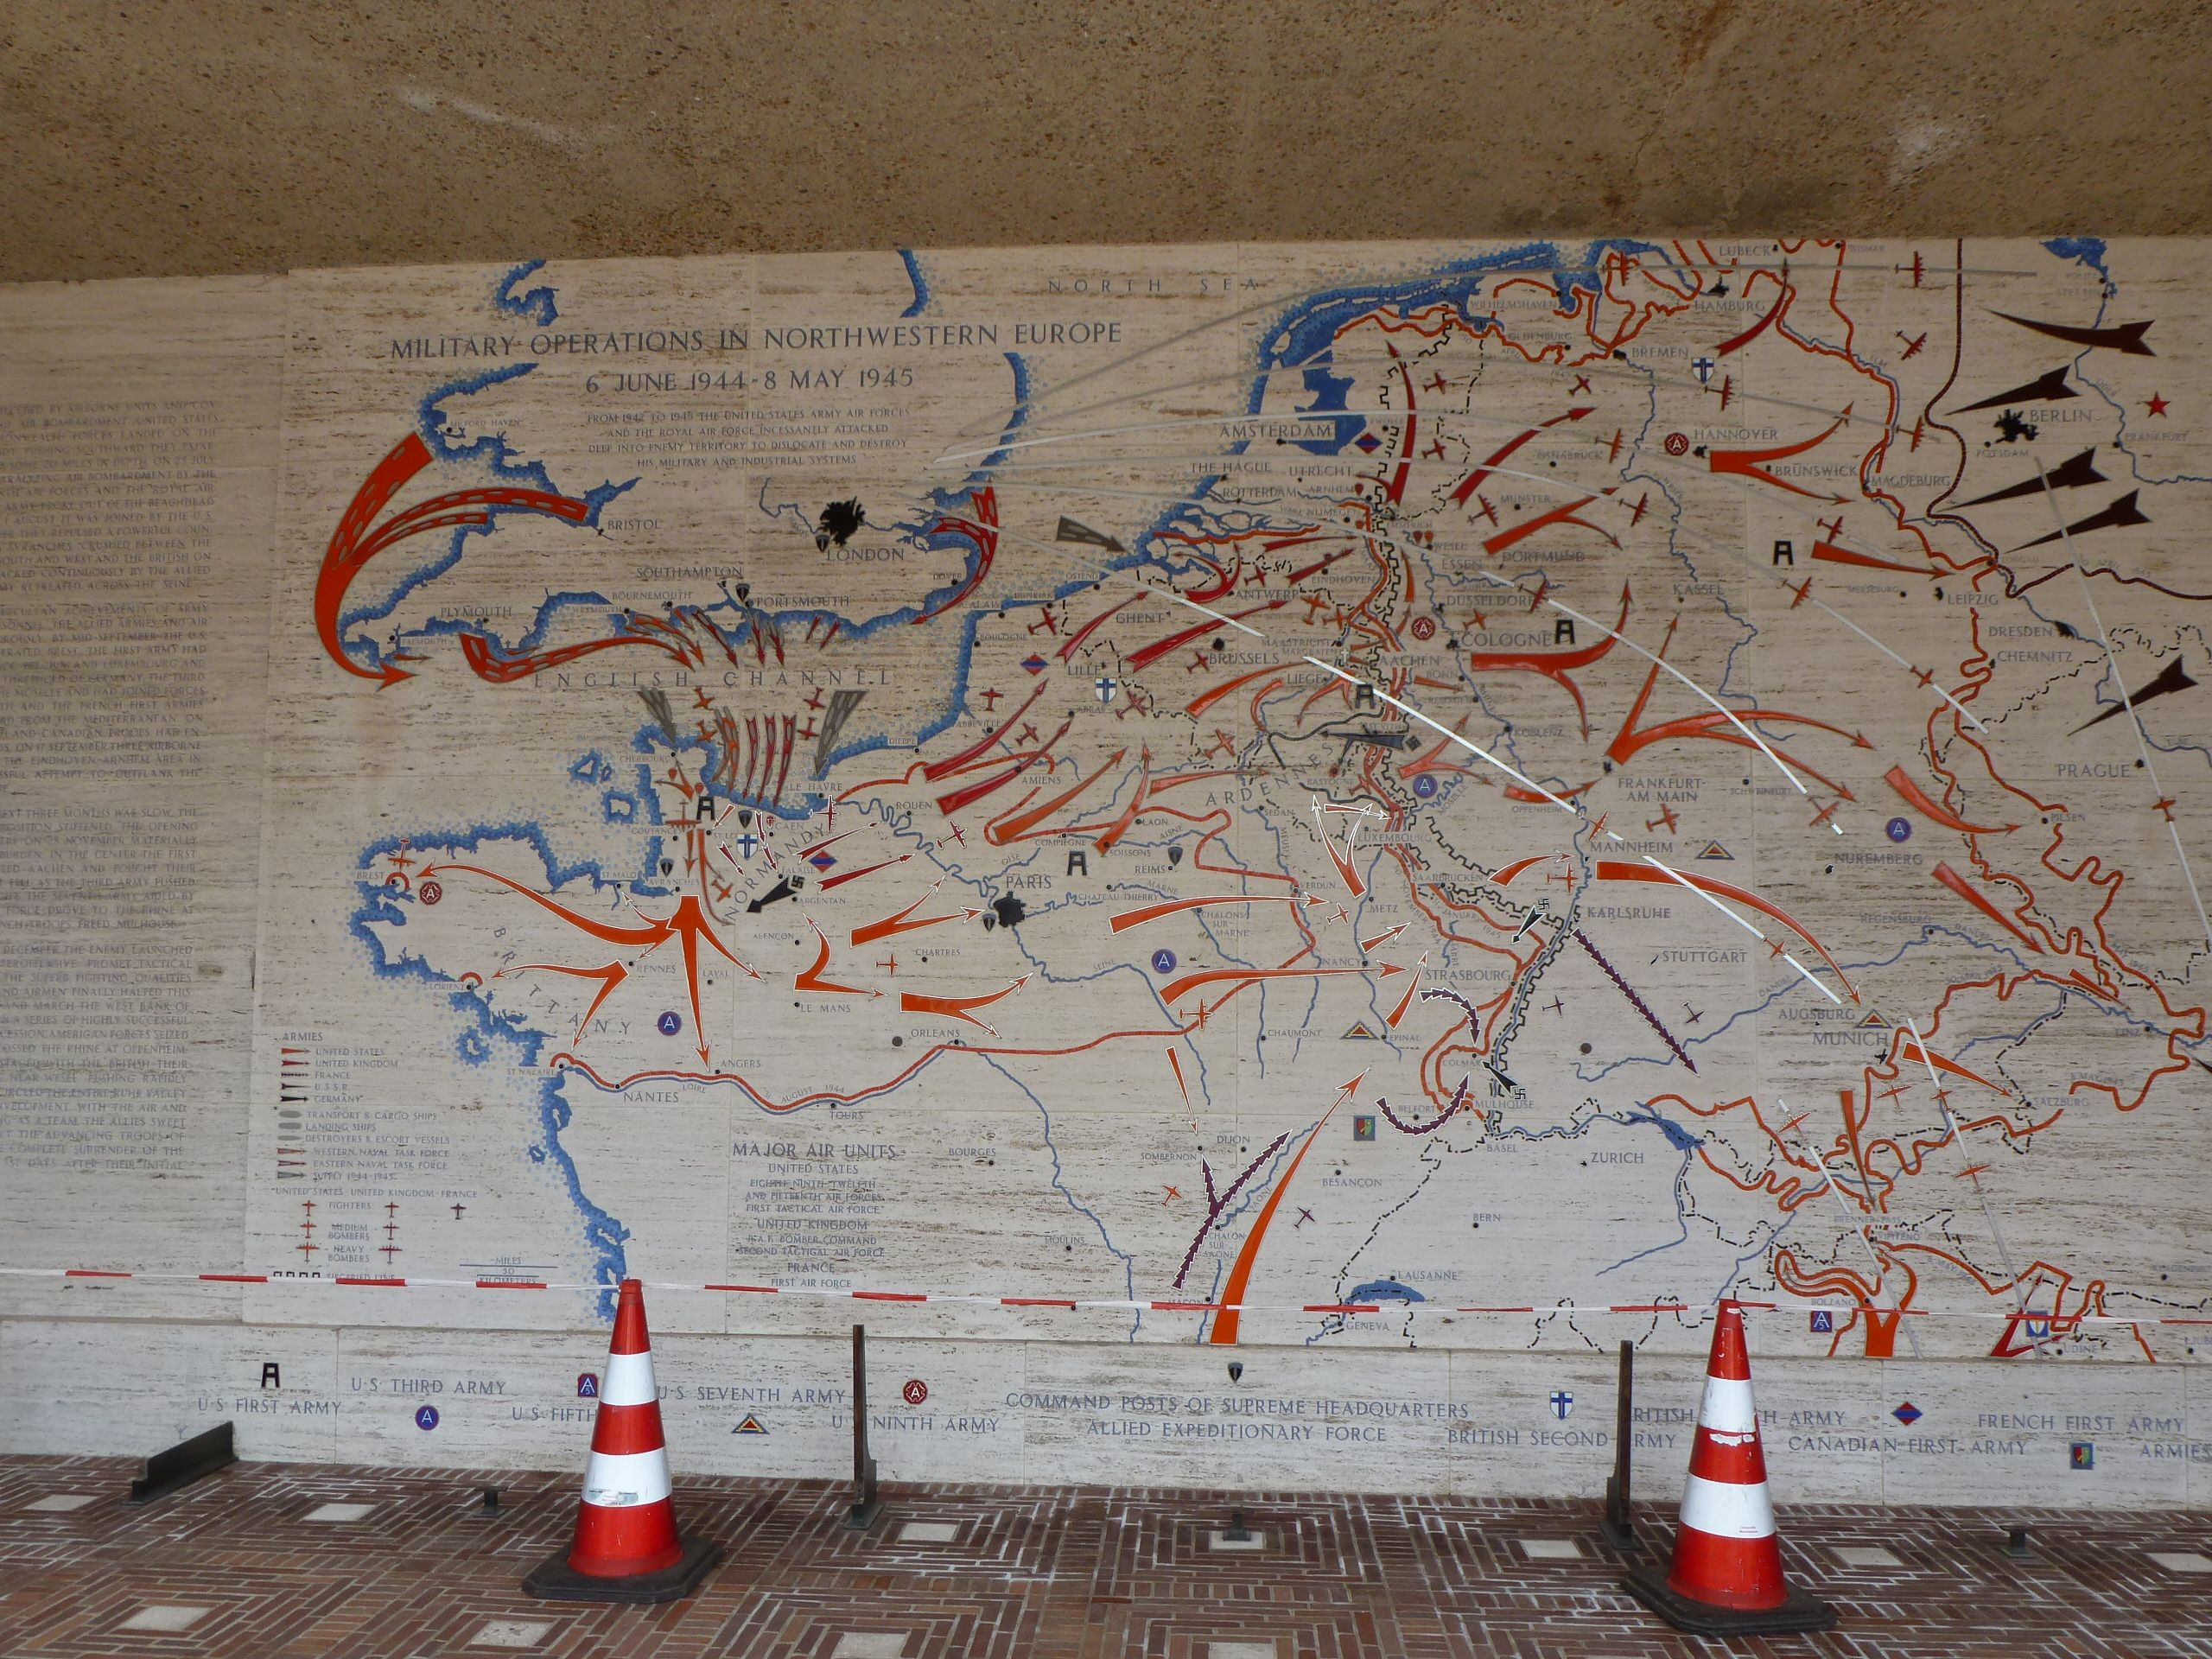 The map of operations on the grounds in Margraten Belgium